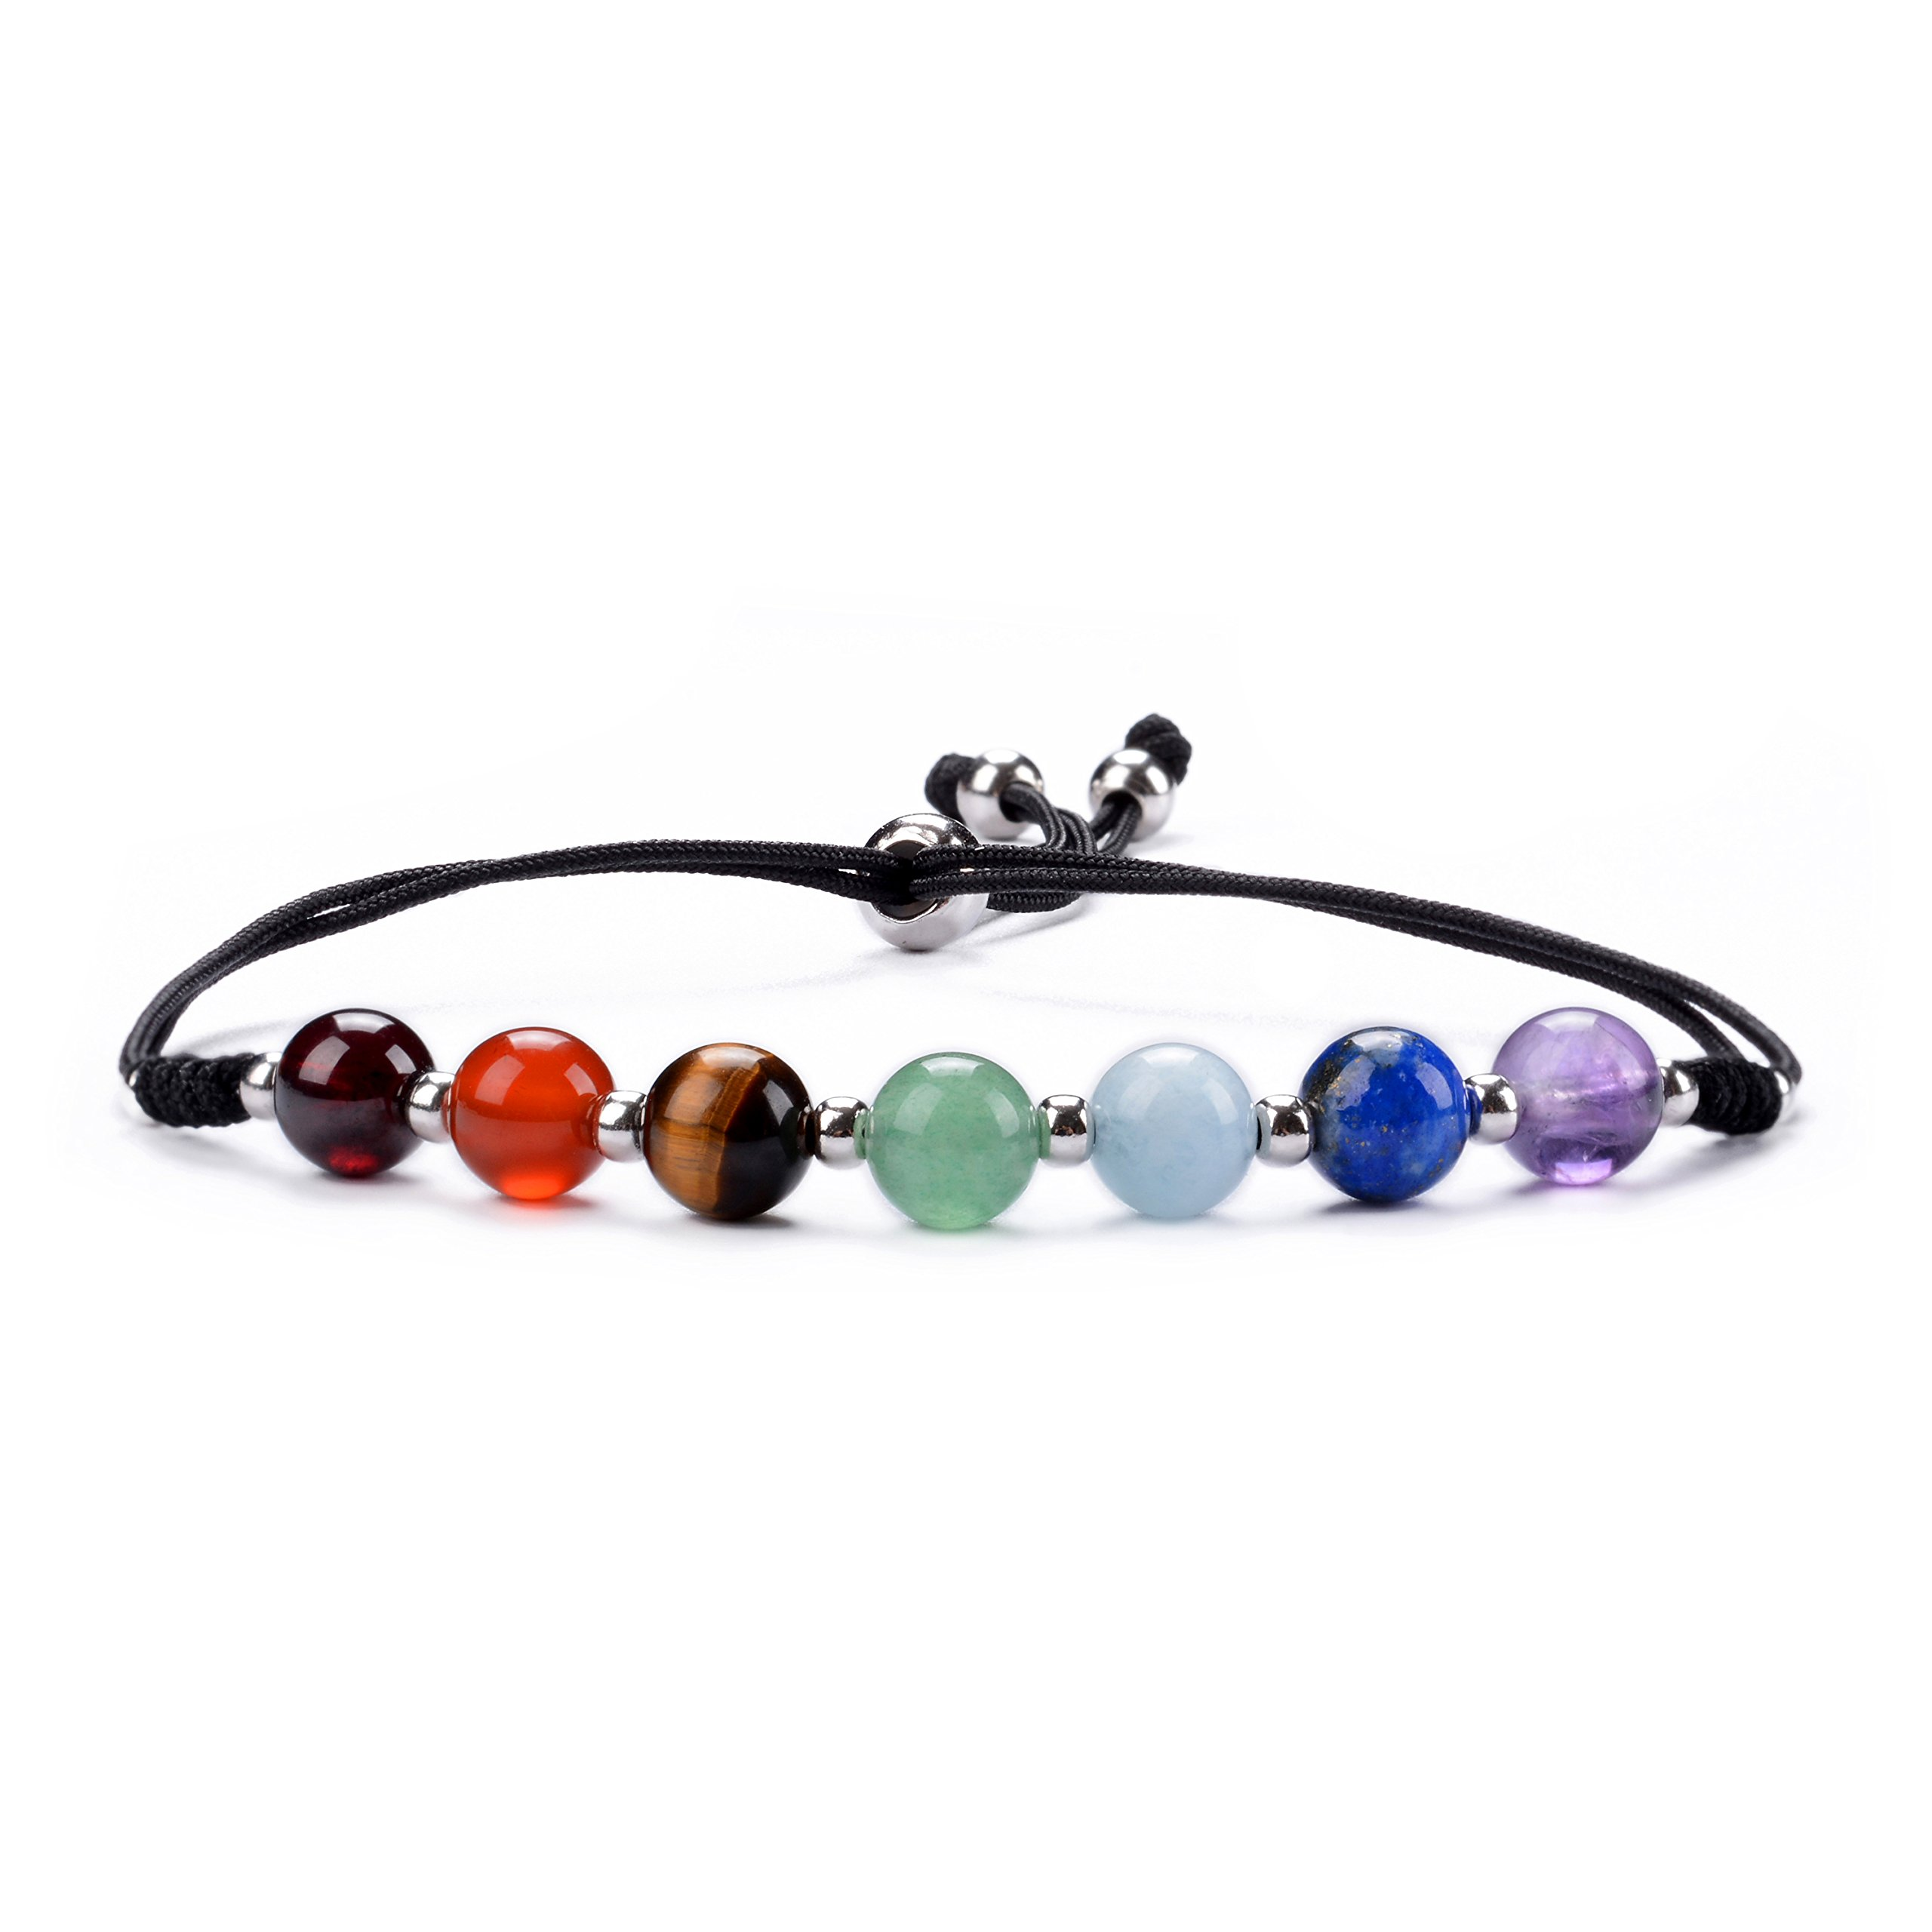 Cherry Tree Collection Natural Gemstone Chakra Bracelet | Adjustable Size Nylon Cord | 6mm Beads, Silver Spacers | 6.0-7.5'' Womens/Girls (Black)